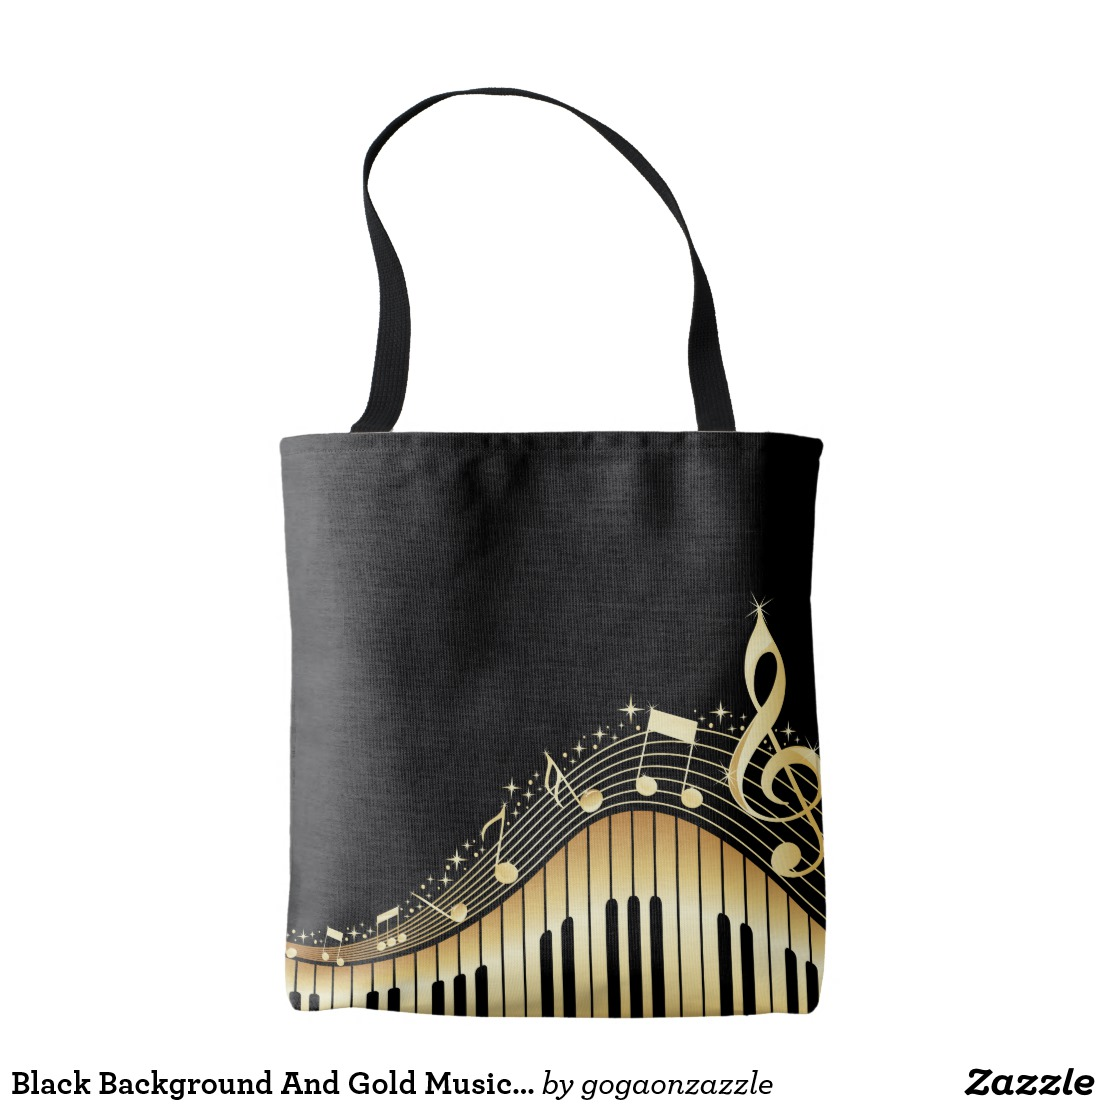 Black Background And Gold Musical Notes Tote Bag